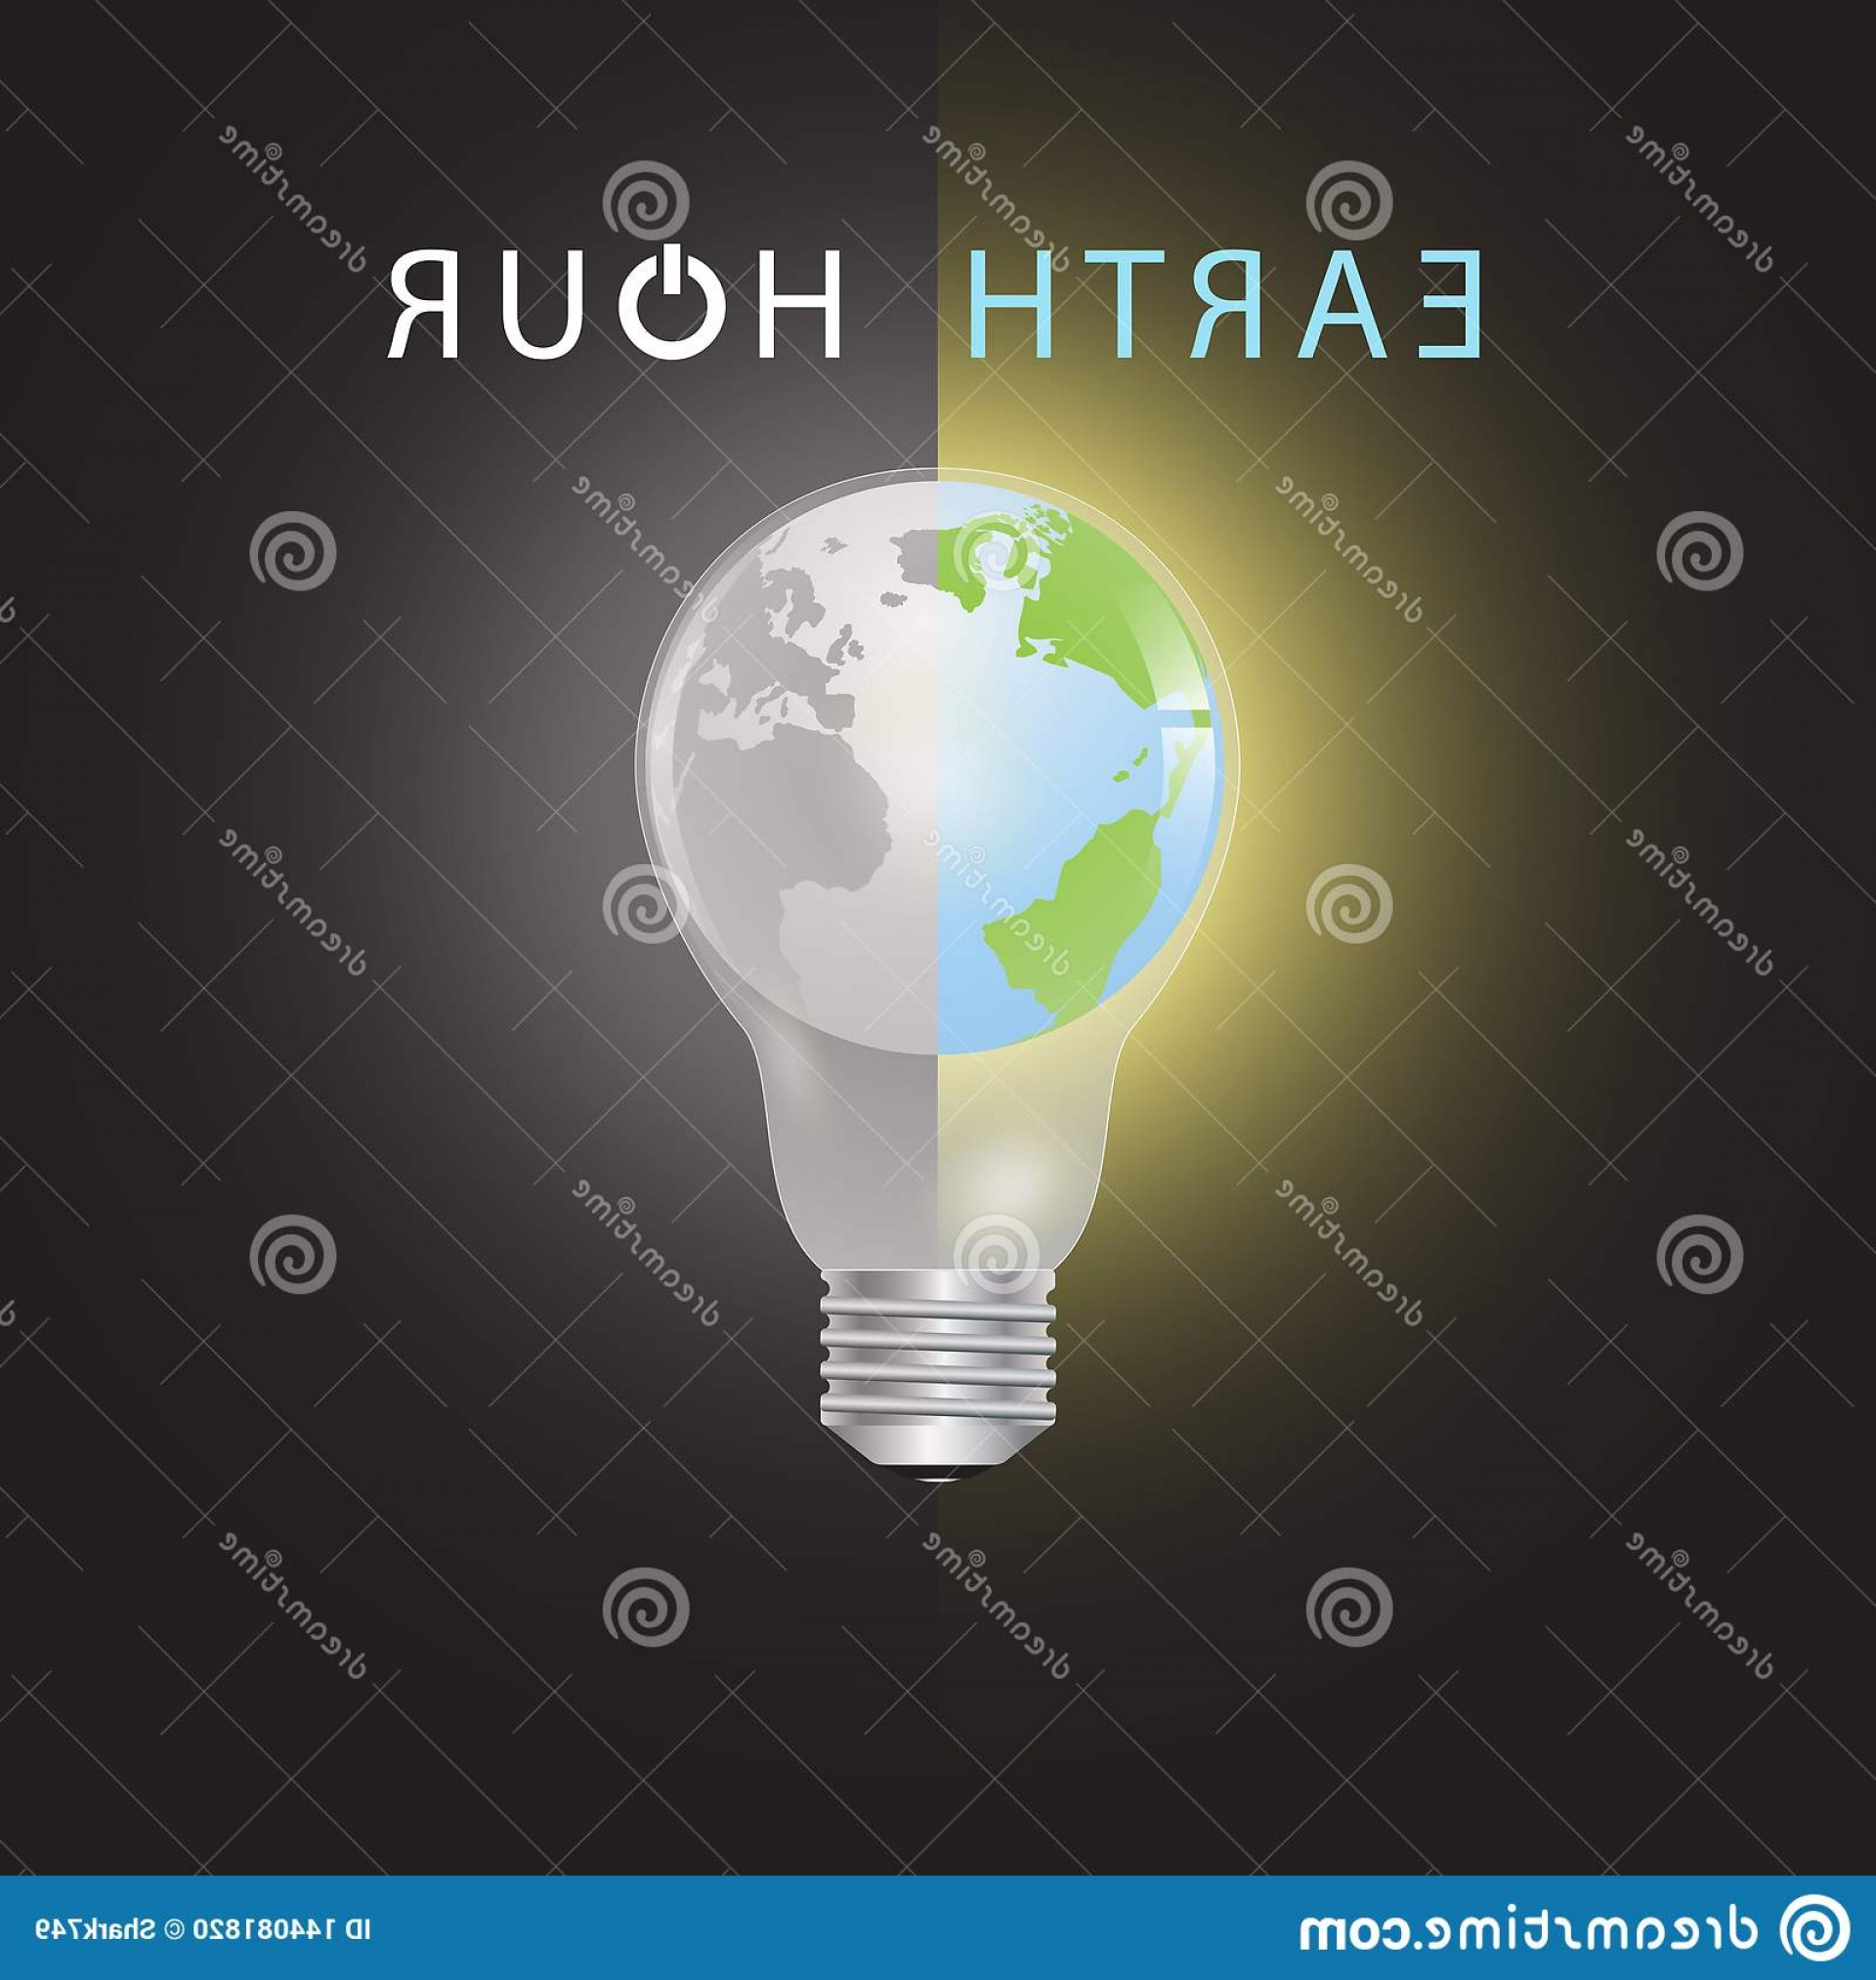 One Color Simple Vector Globe: Globe Lightbulb One Half Color Another Half Black White Earth Hour Environmental Concept Vector Illustration Image